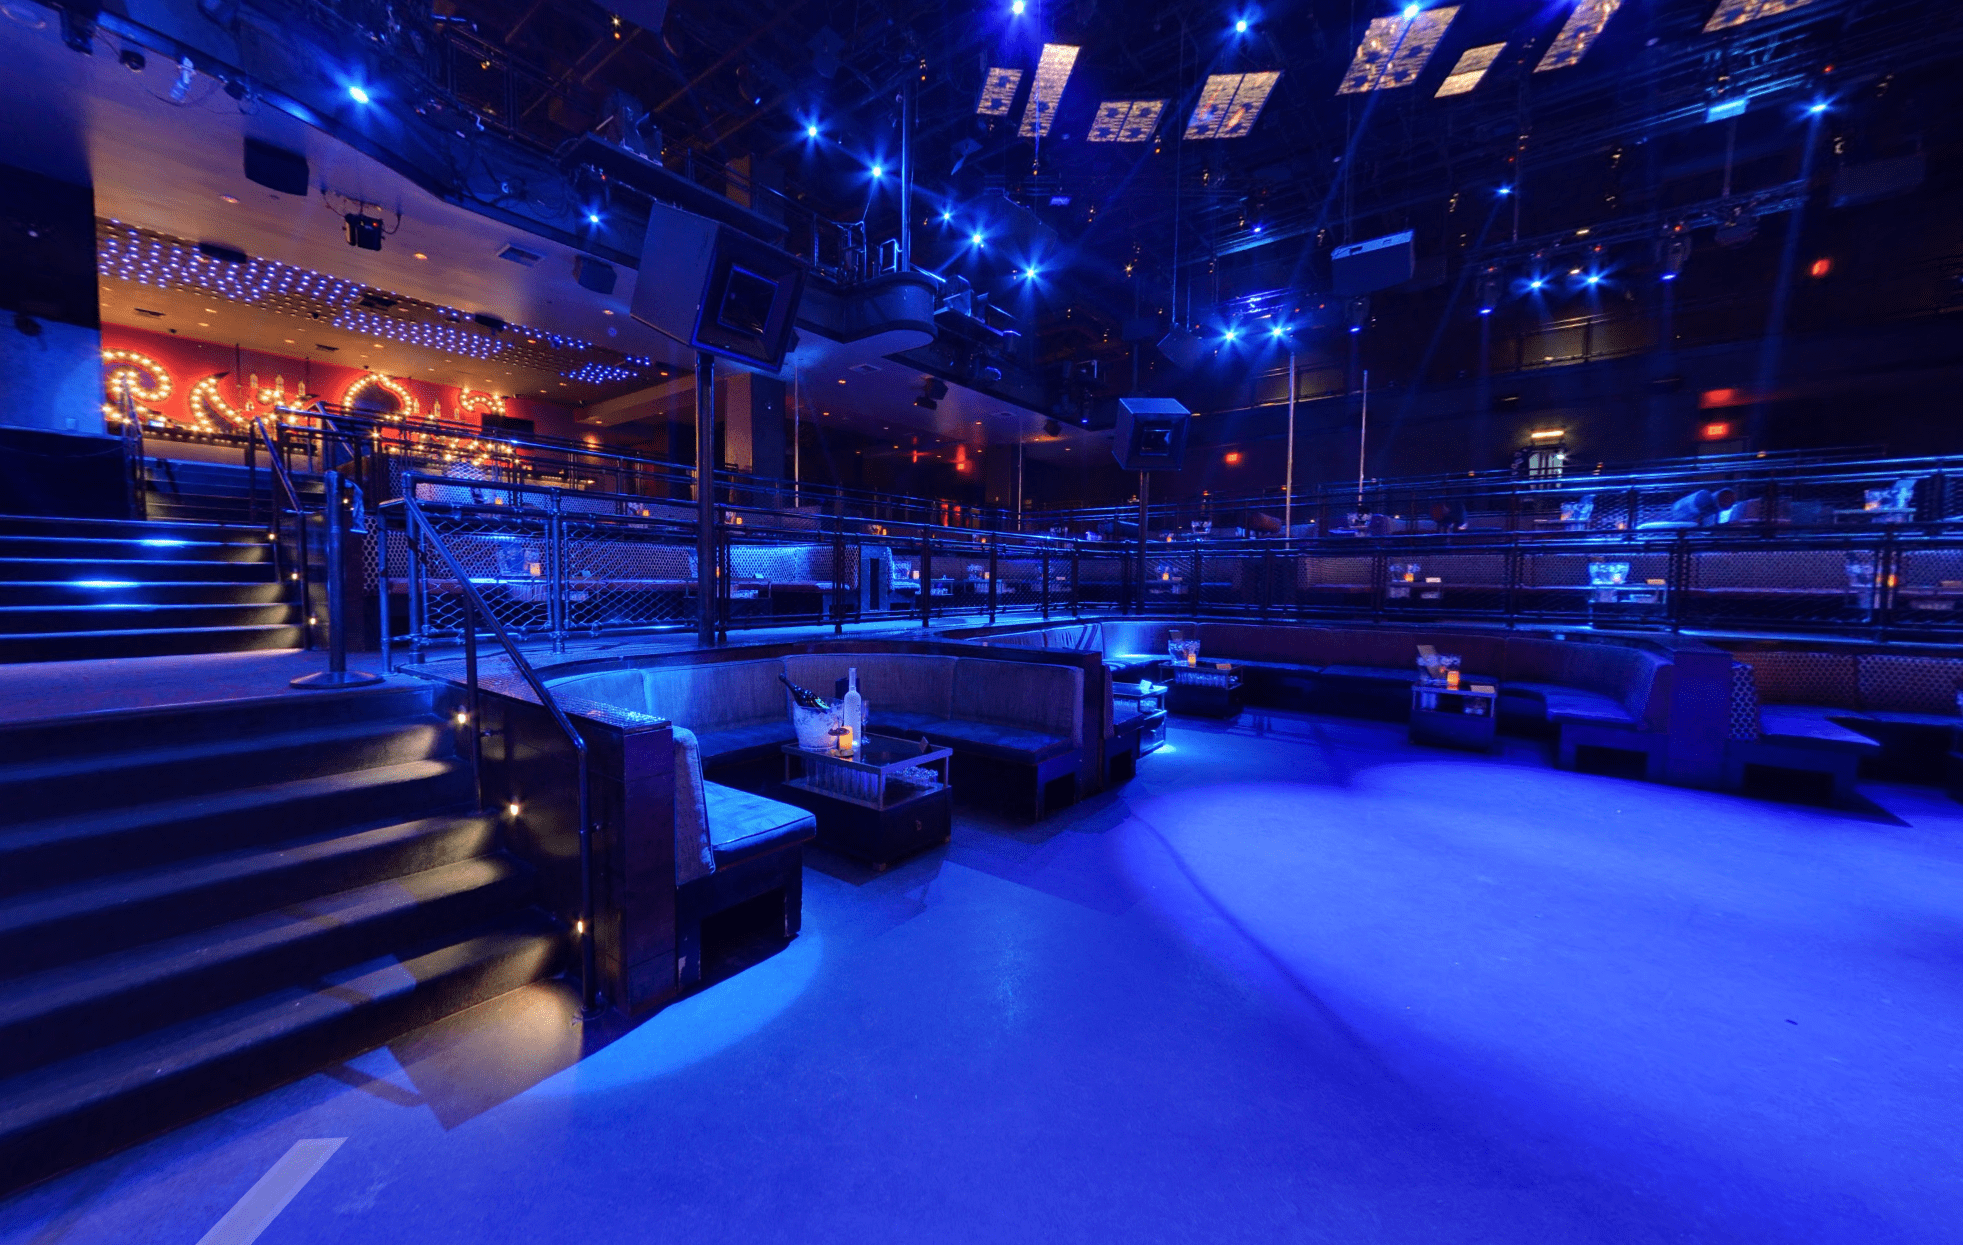 Light Nightclub Dancefloor Table